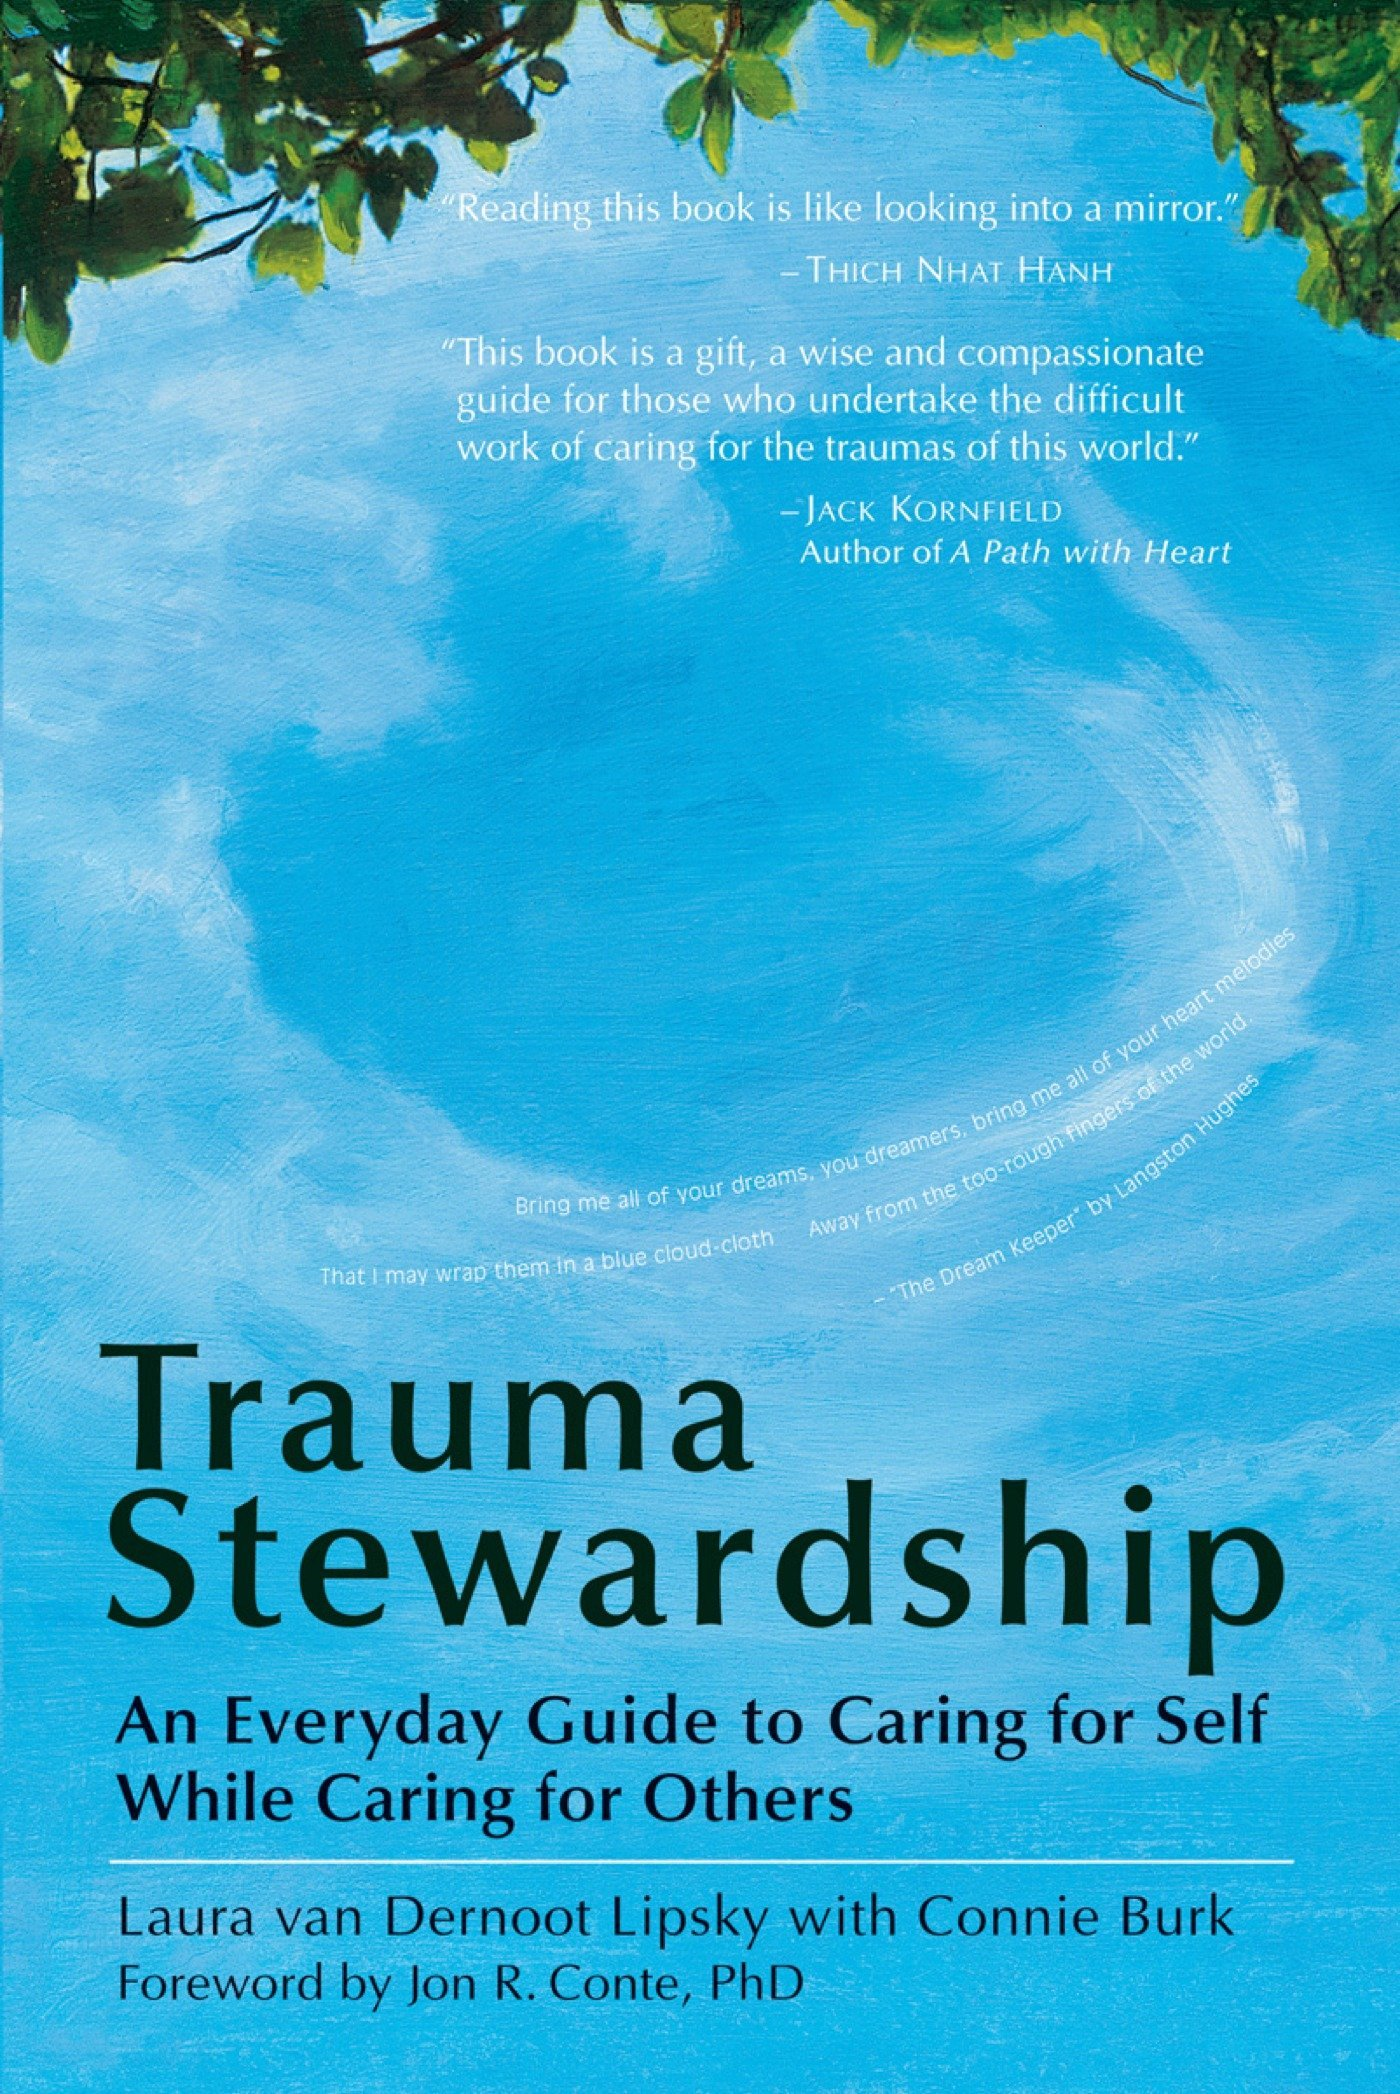 Trauma Stewardship: An Everyday Guide to Caring for Self While Caring for Others -